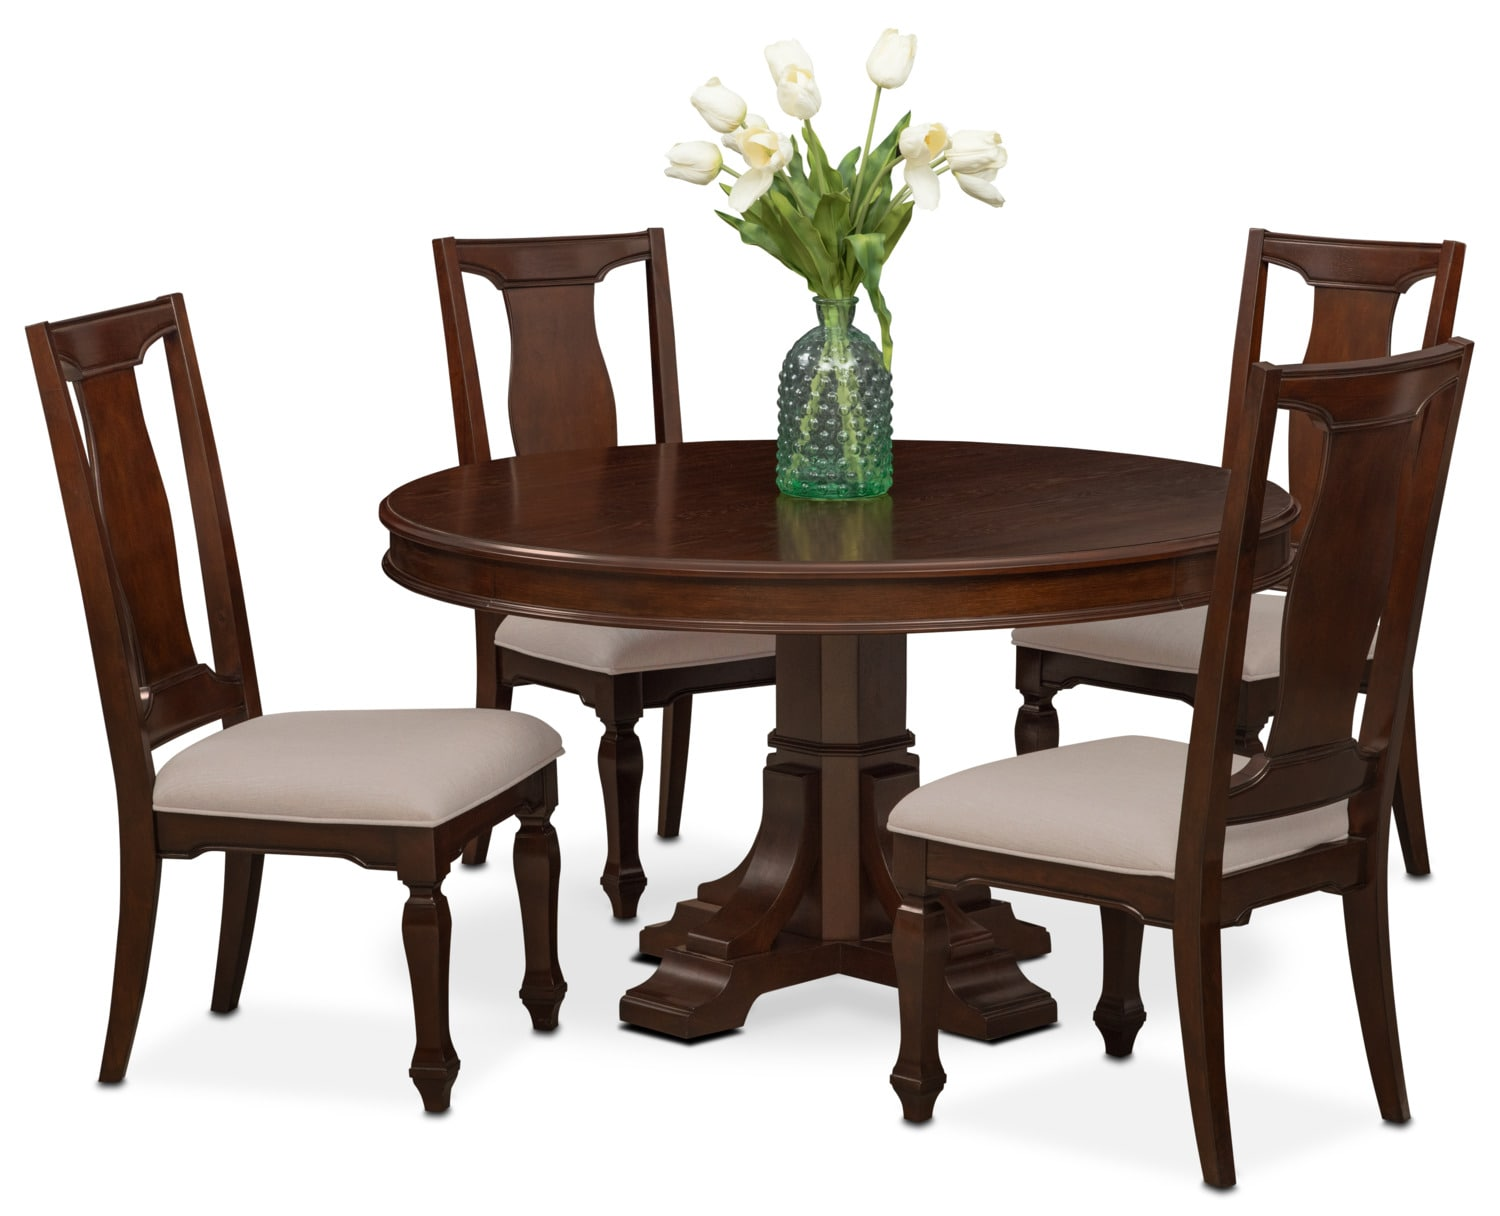 Circular Dining Table And Chairs: Vienna Round Dining Table And 4 Side Chairs